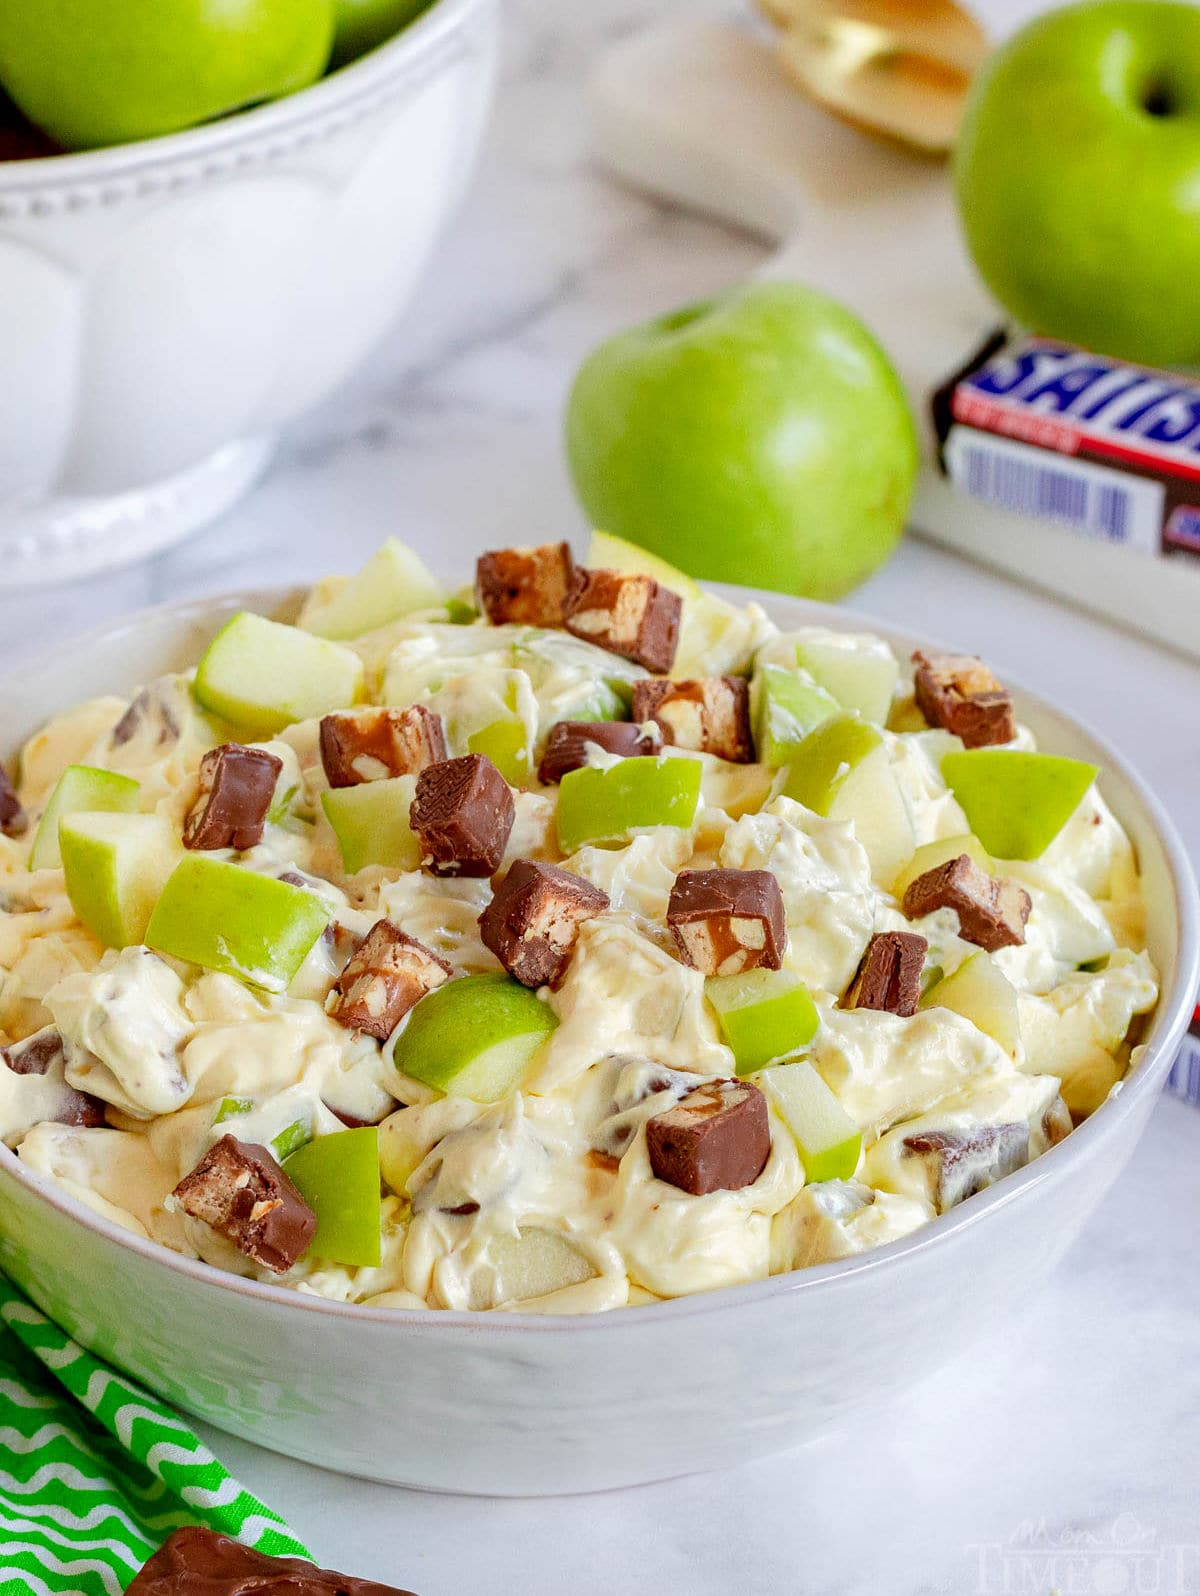 apple salad with snickers mixed in in large white bowl.